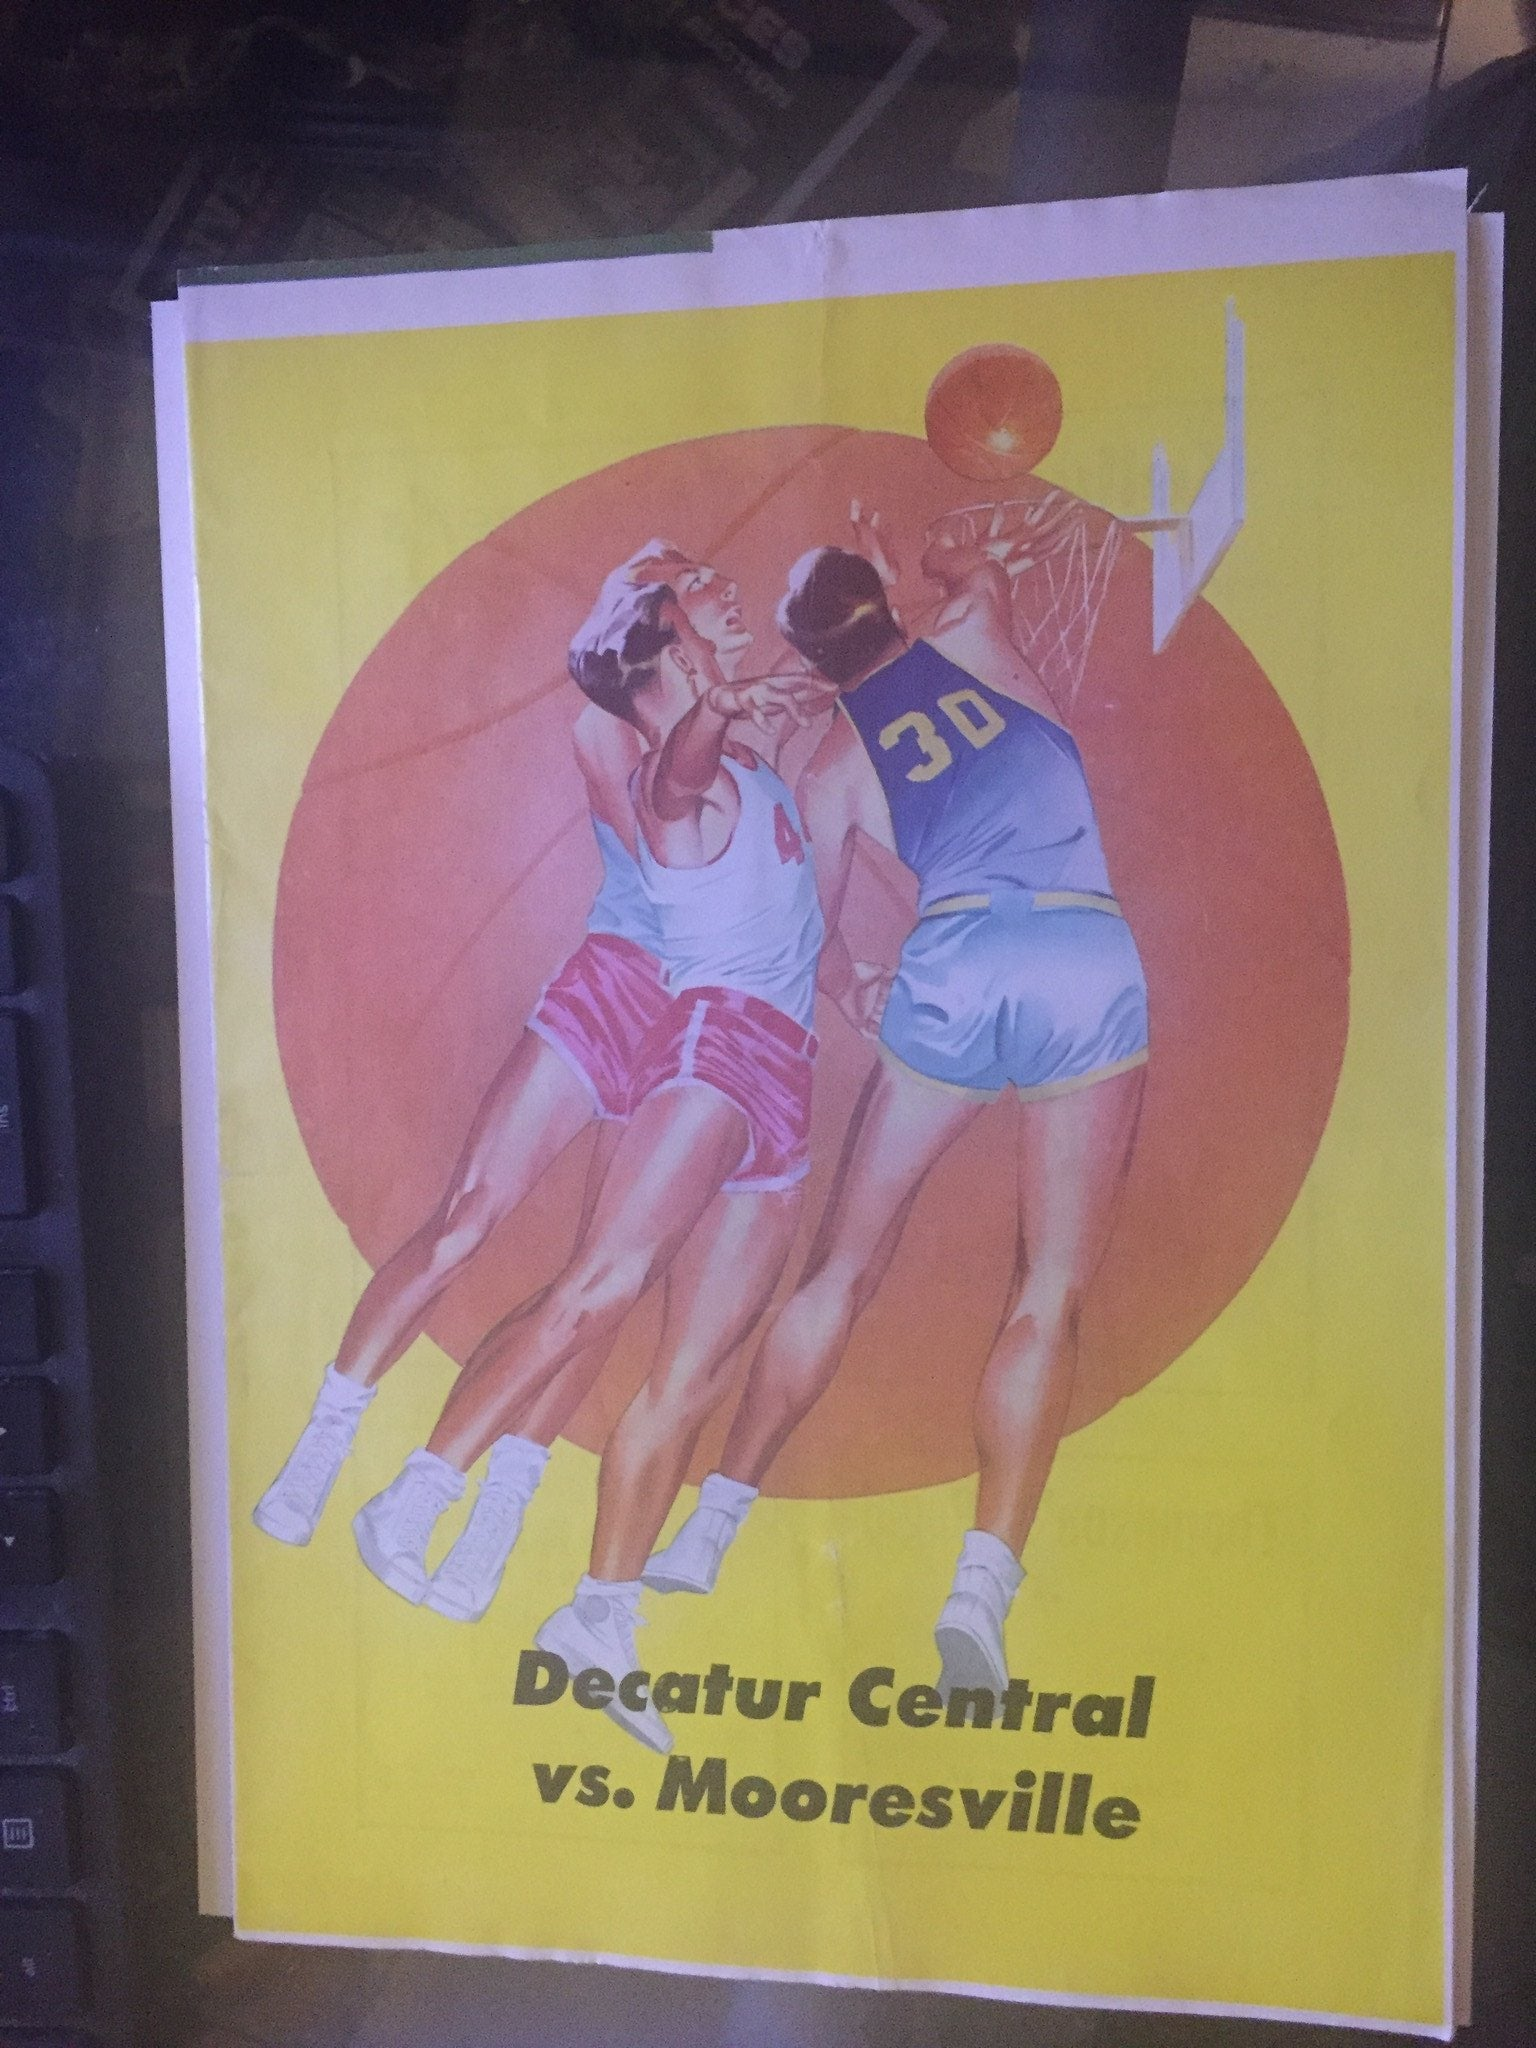 1951 Decatur Central vs Mooresville Indiana High School Basketball Program - Vintage Indy Sports